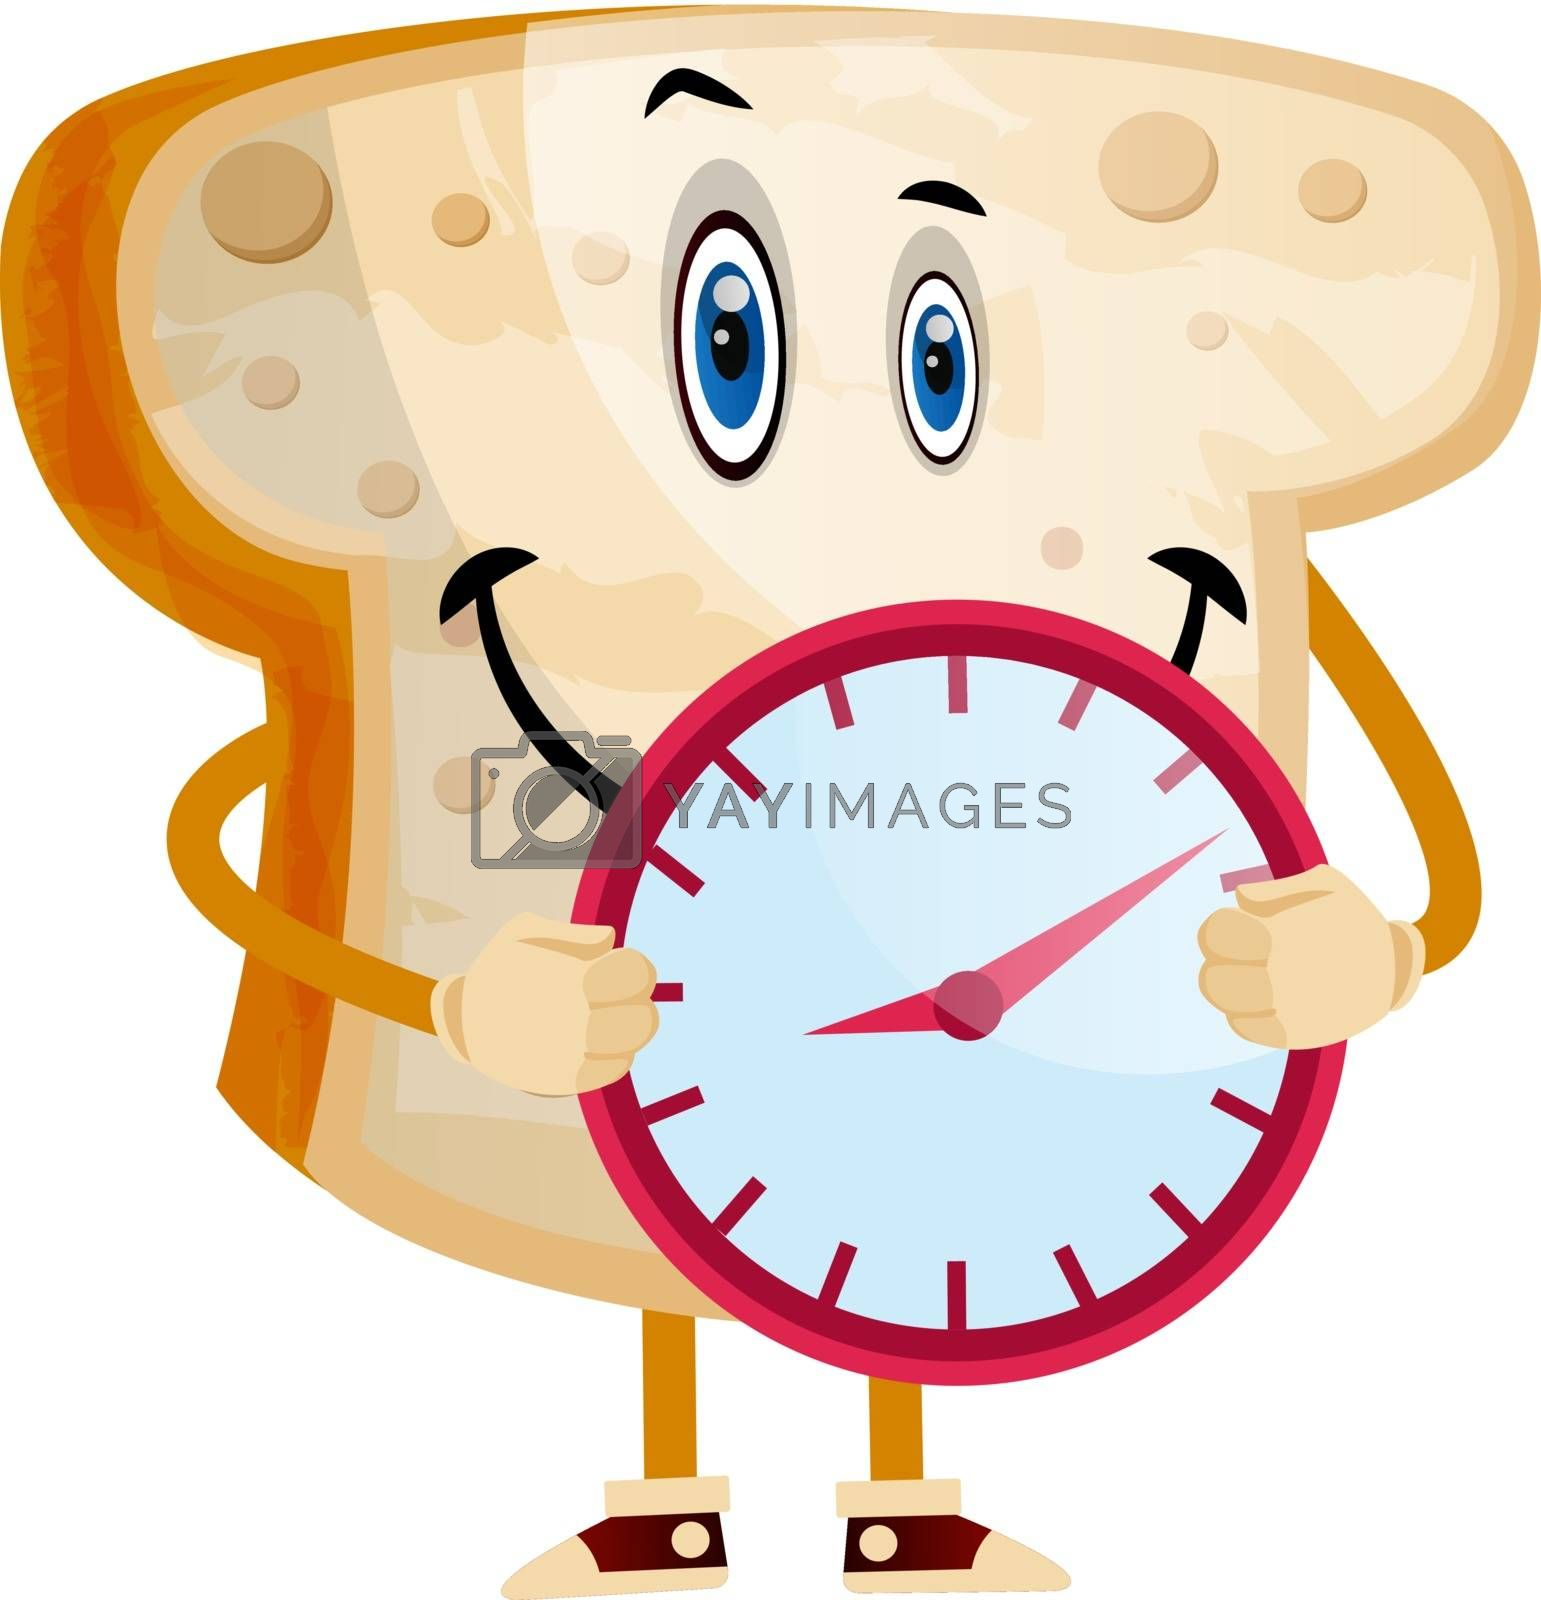 Royalty free image of Time Bread illustration vector on white background by Morphart